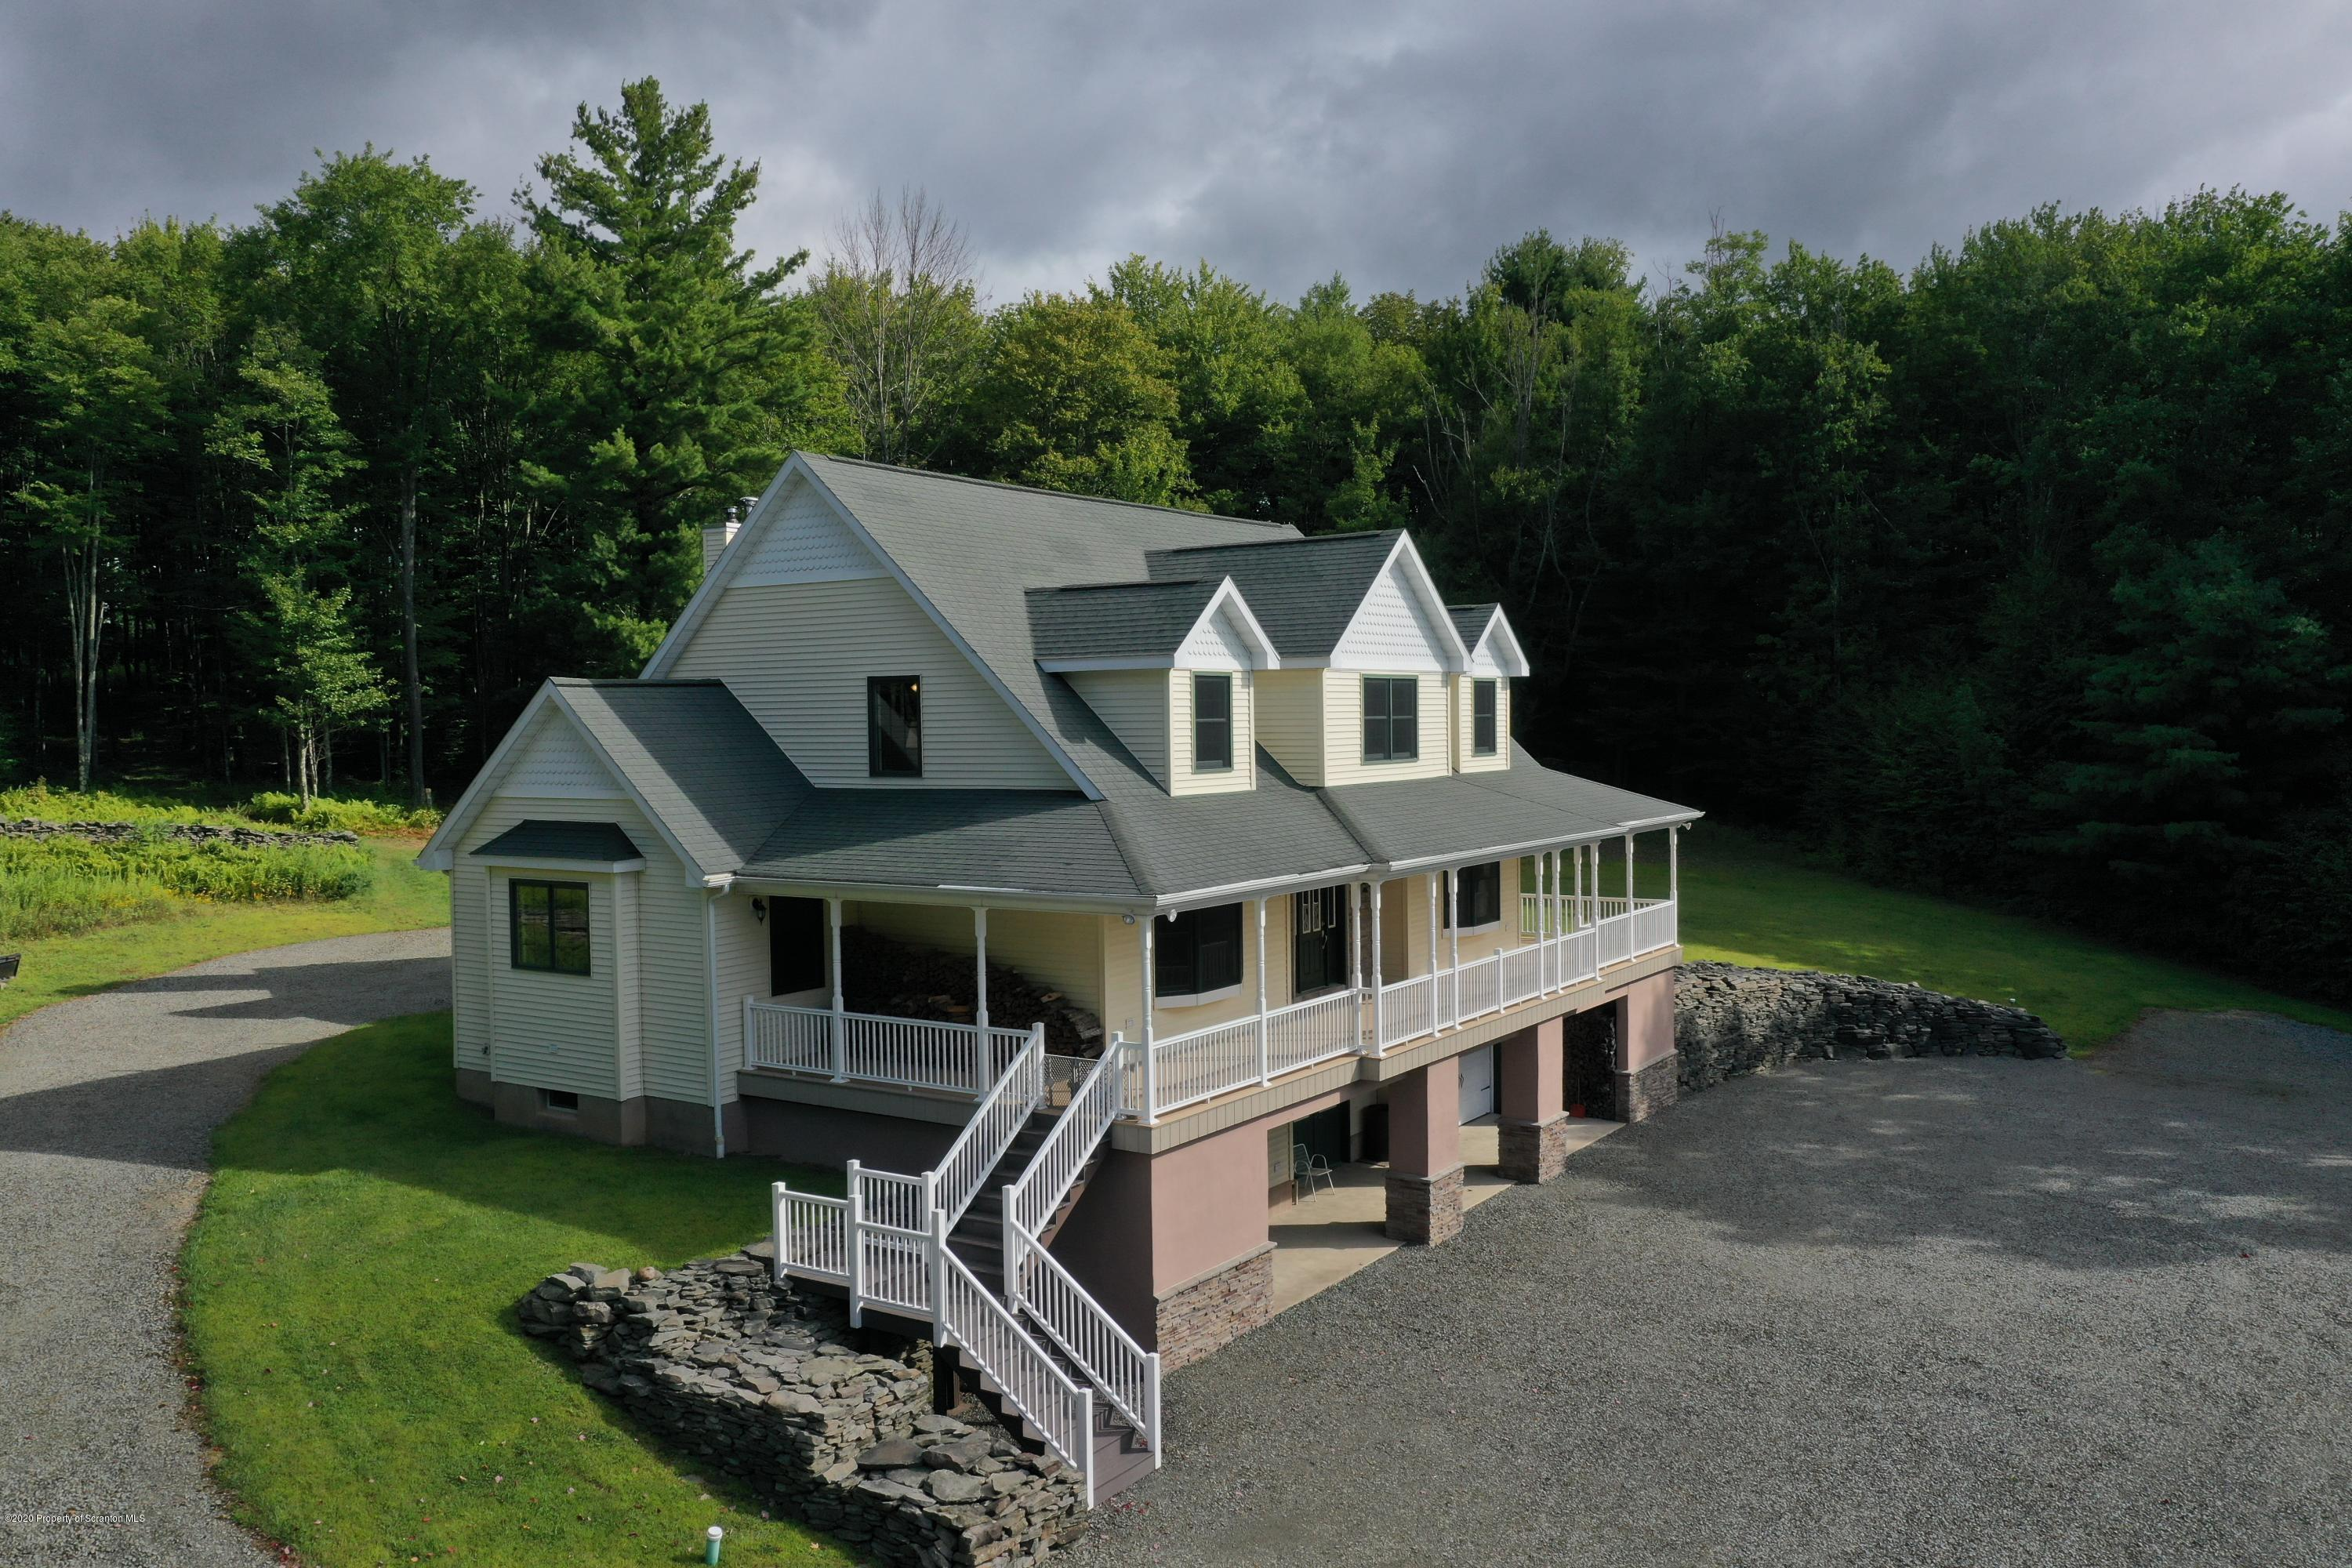 927 peck hill Road, New Milford, Pennsylvania 18834, 4 Bedrooms Bedrooms, 7 Rooms Rooms,3 BathroomsBathrooms,Single Family,For Sale,peck hill,20-3732